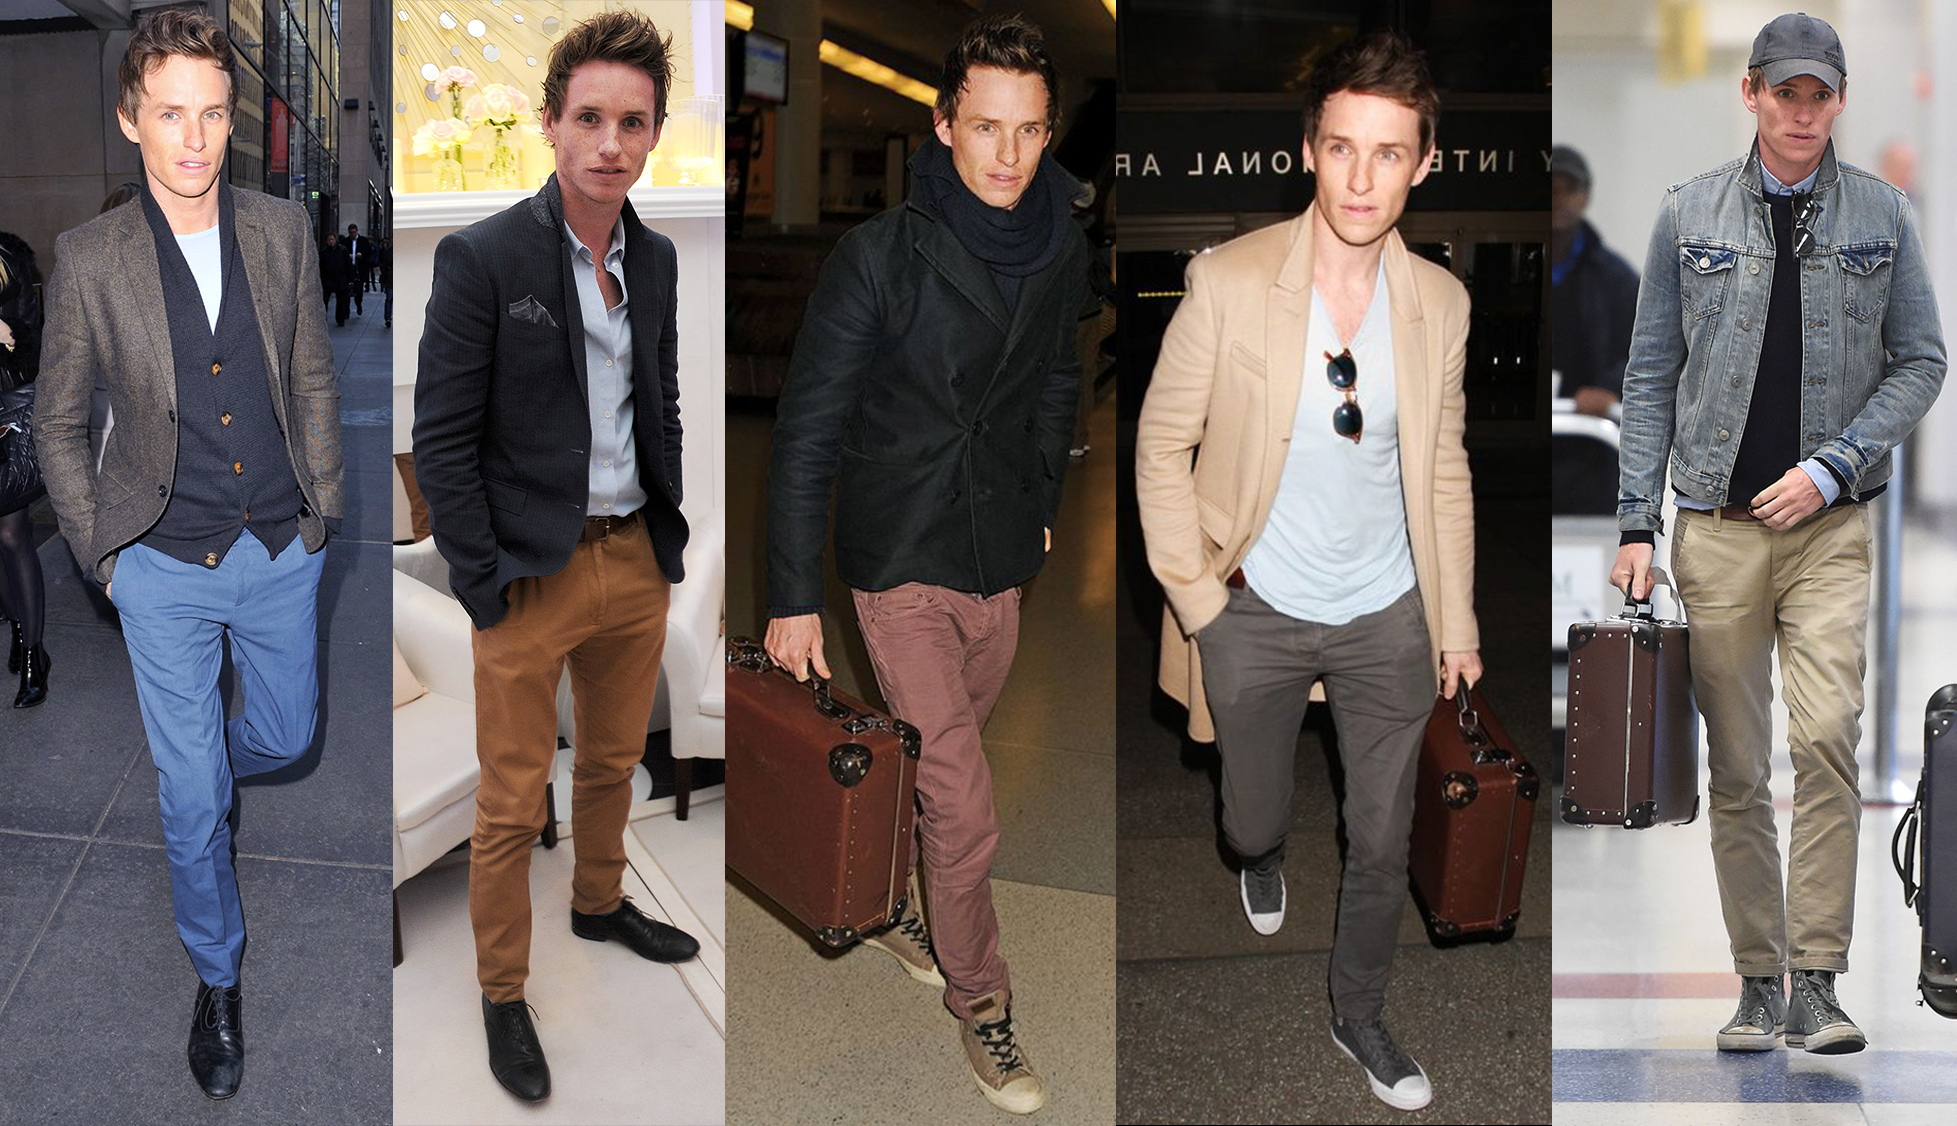 eddie_radmeyne_style_men_top10_fashion